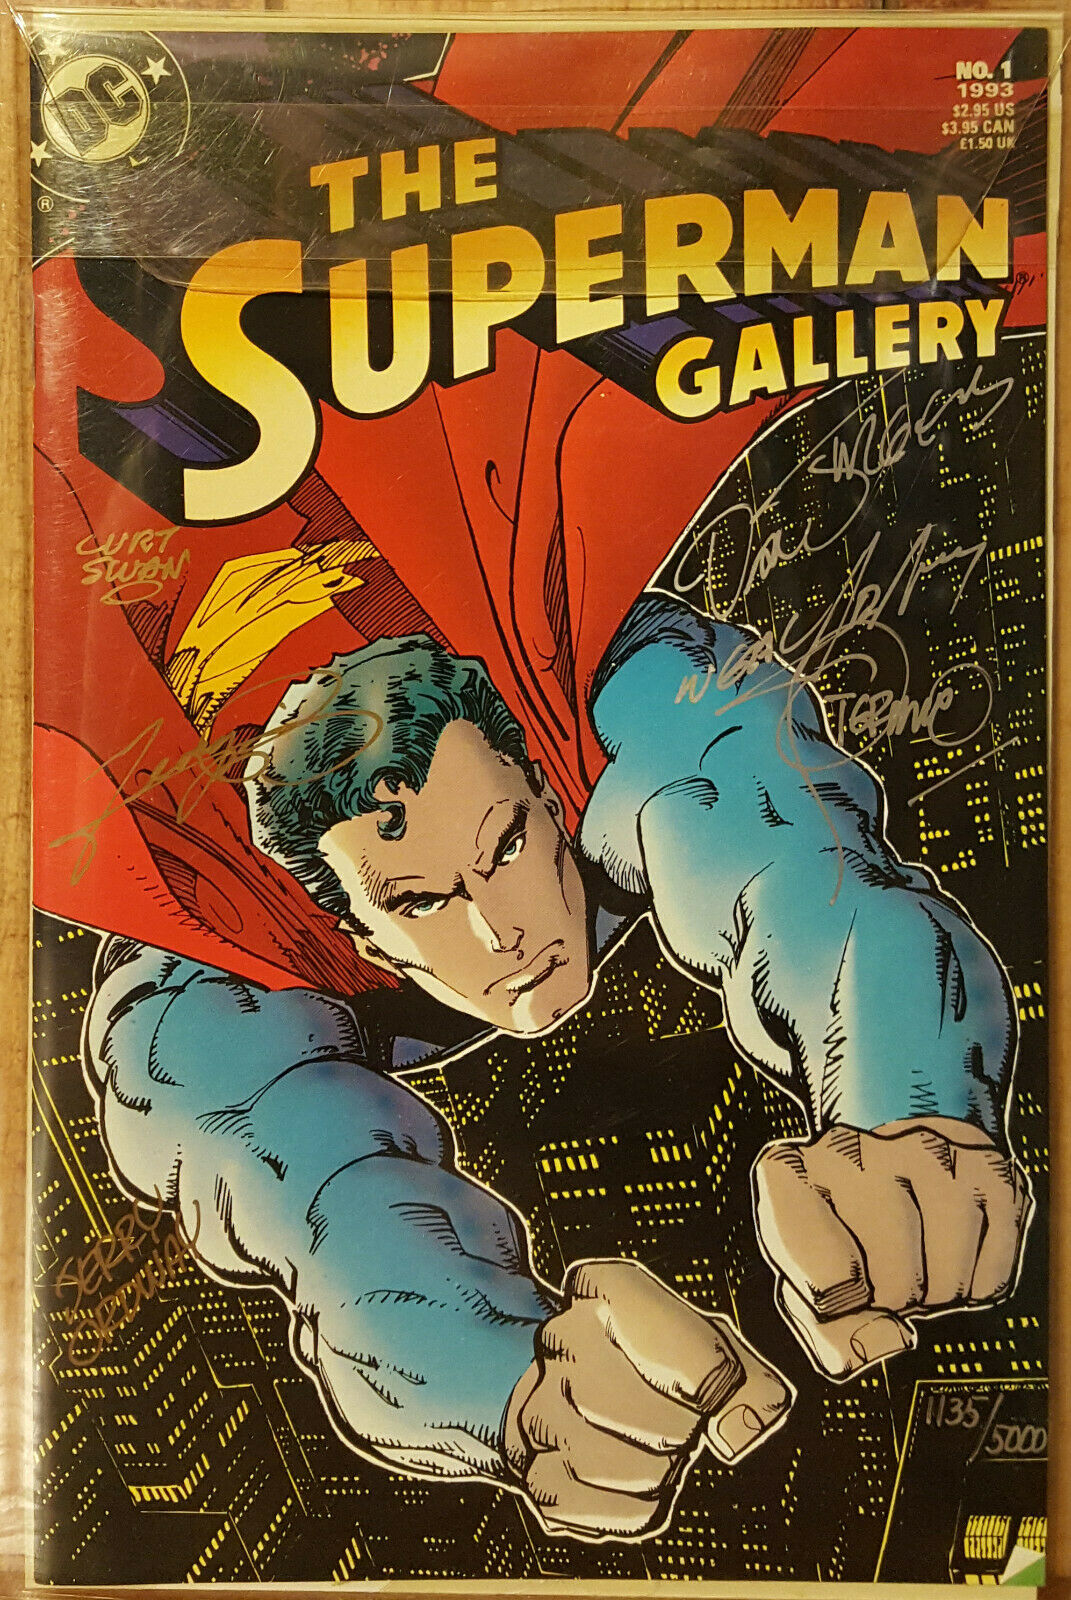 THE SUPERMAN GALLERY #1 COA # 1135 SIGNED BY NEAL ADAMS GEORGE PEREZ CURT SWAN